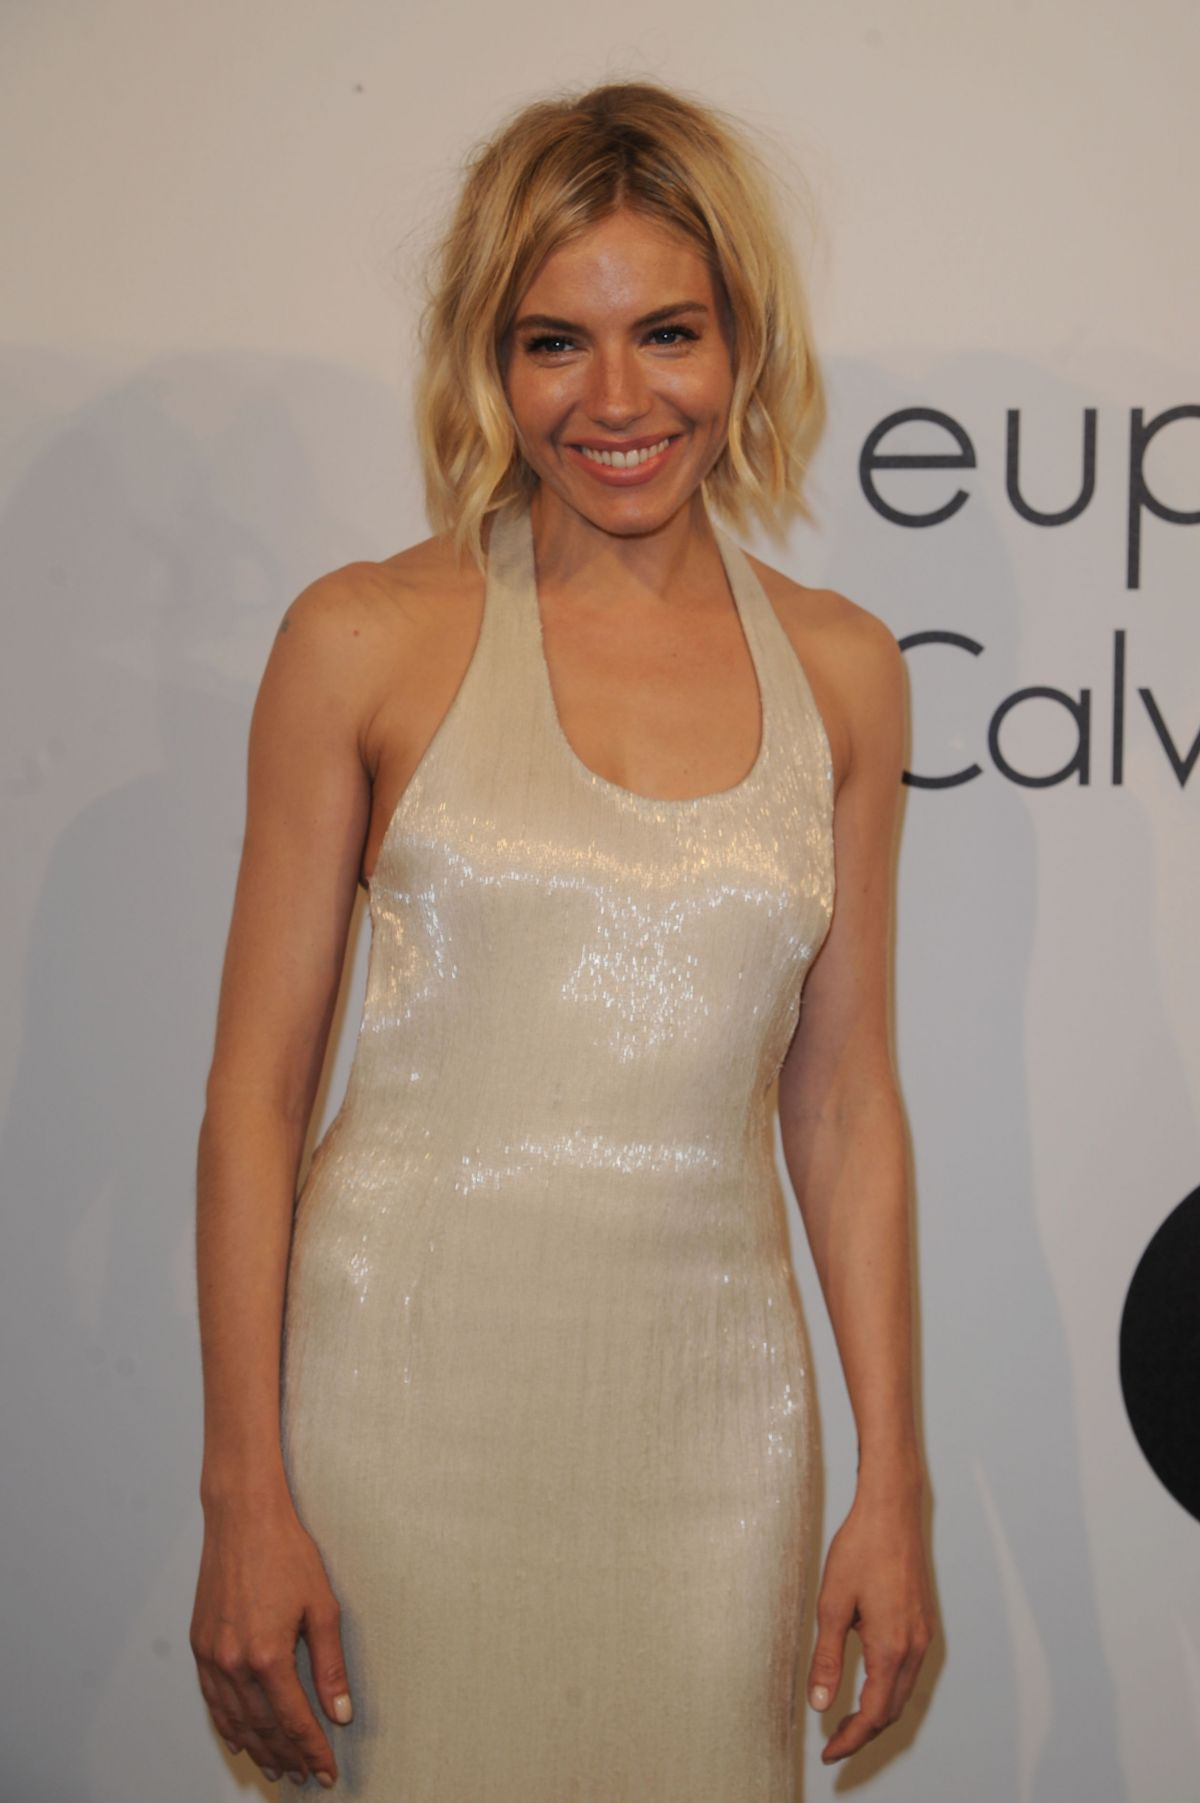 SIENNA MILLER at Calvin Lkein Party in Cannes